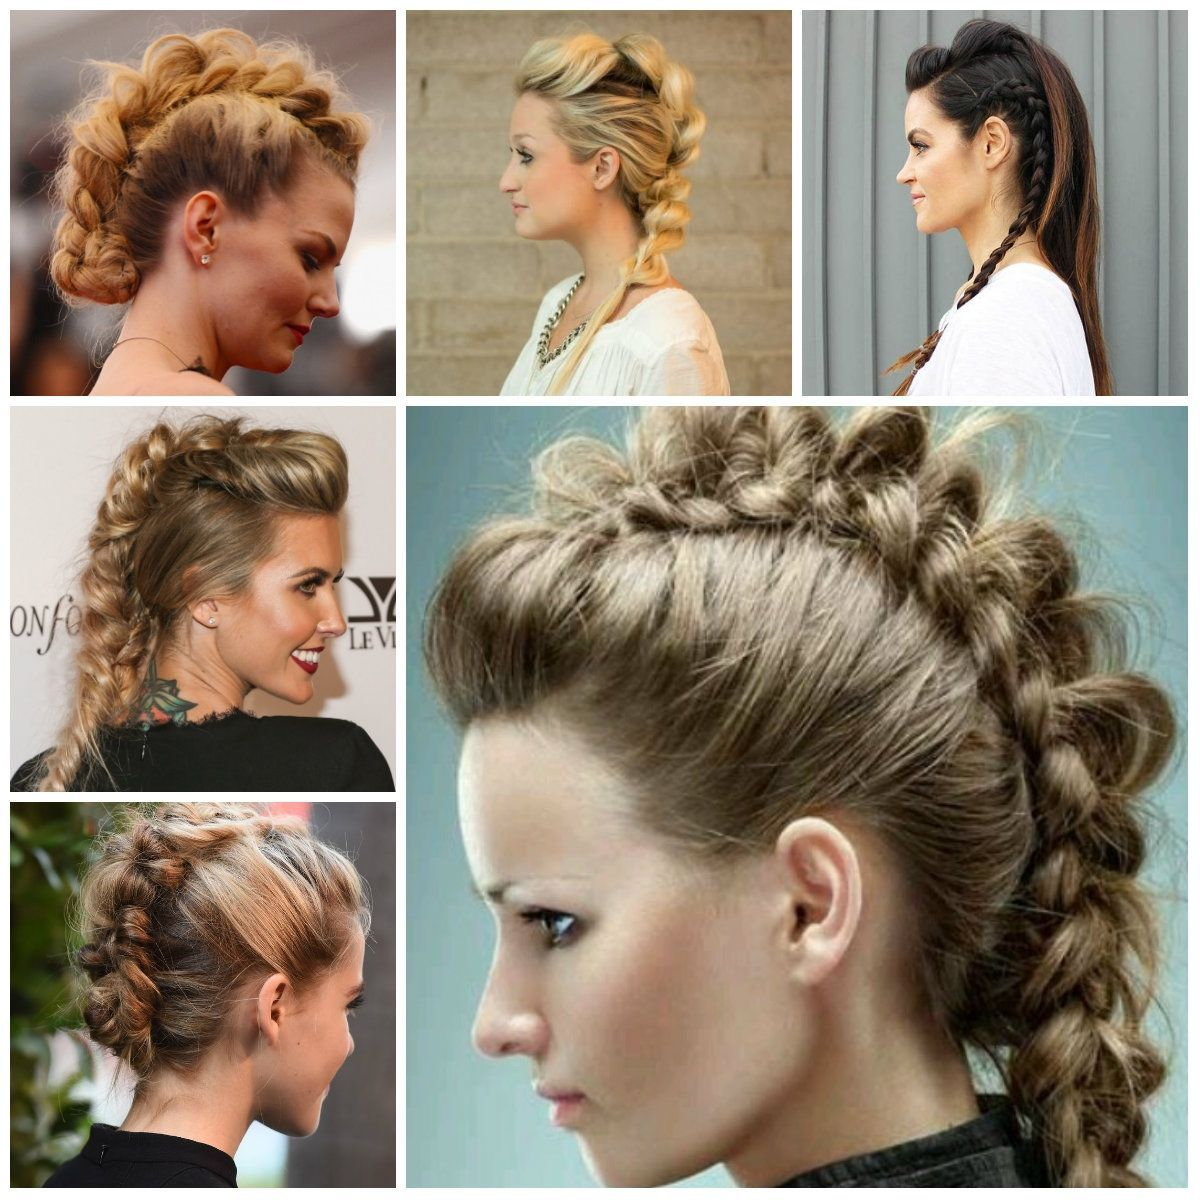 Updo Mohawk Hairstyles Mohawk Braid Hairstyles For 2016 Hairstyles